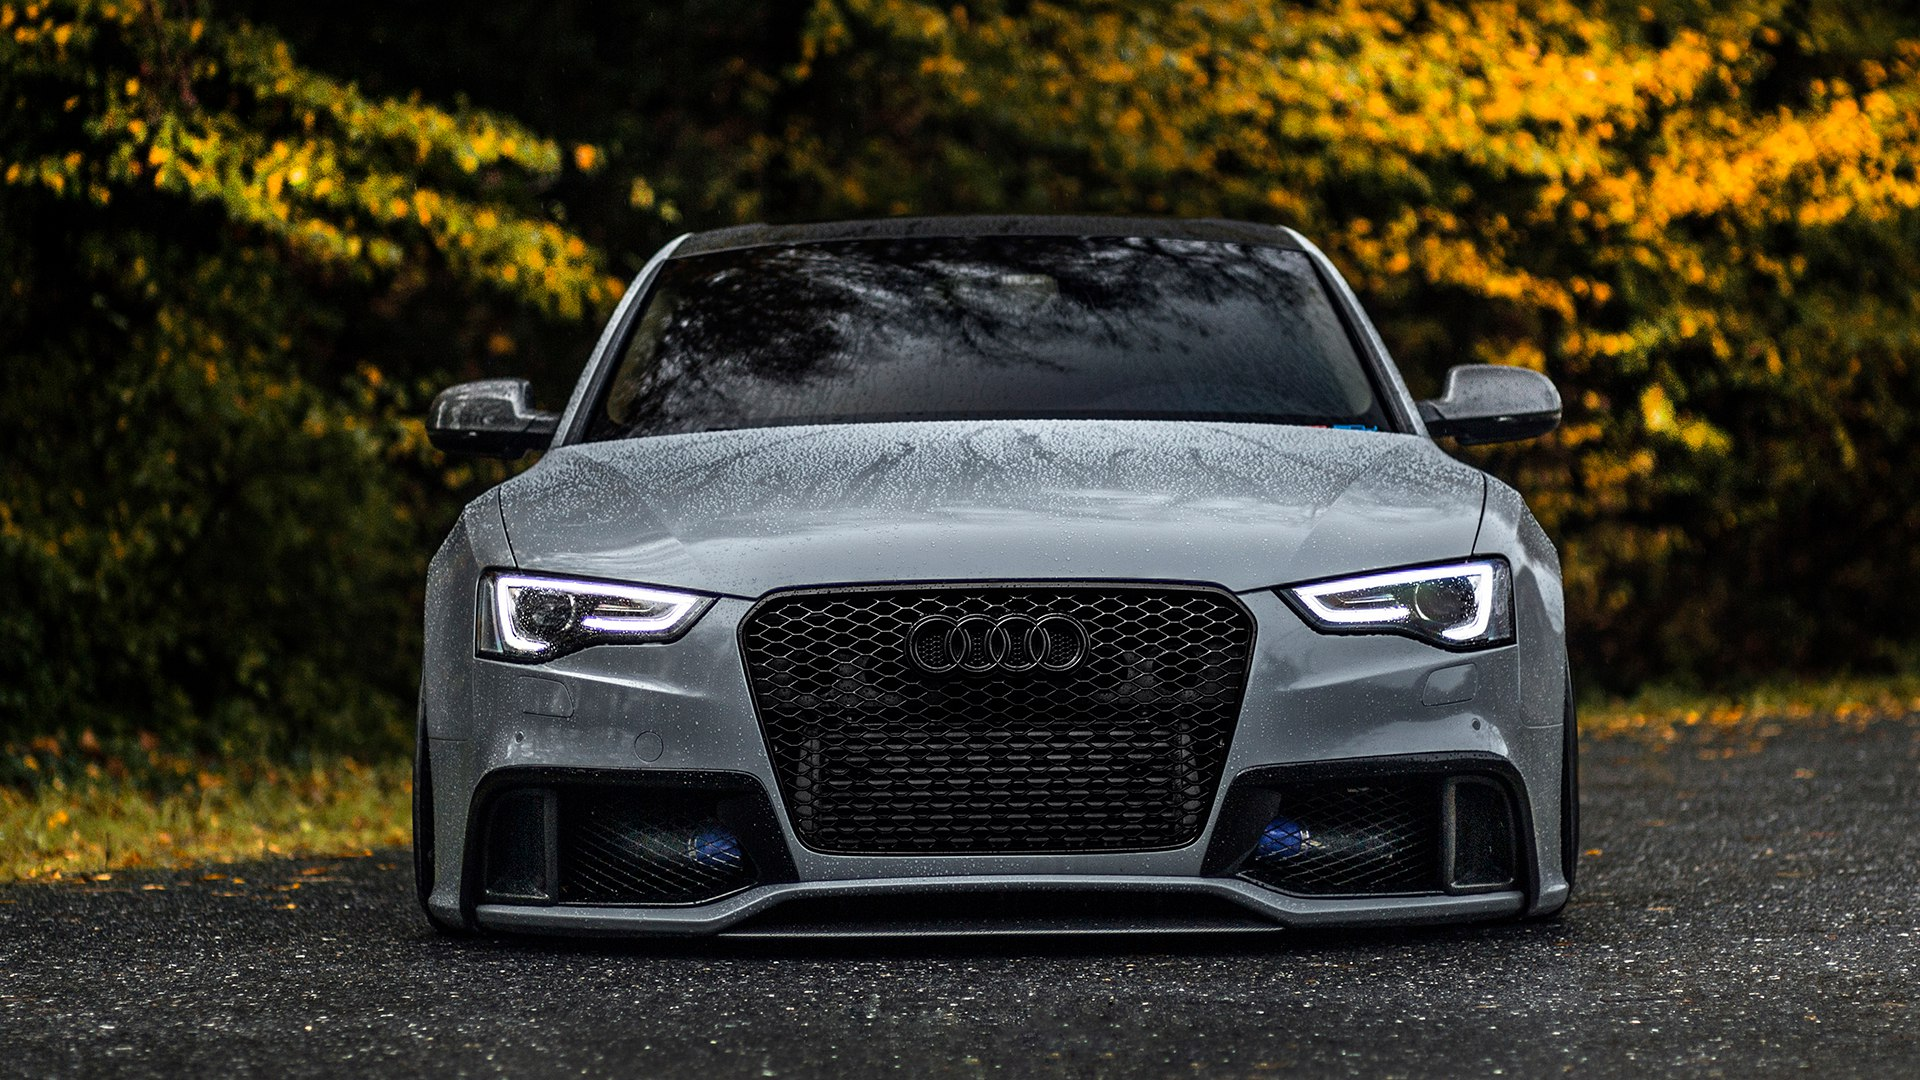 lowered audi rs5 desktop wallpaper 63043